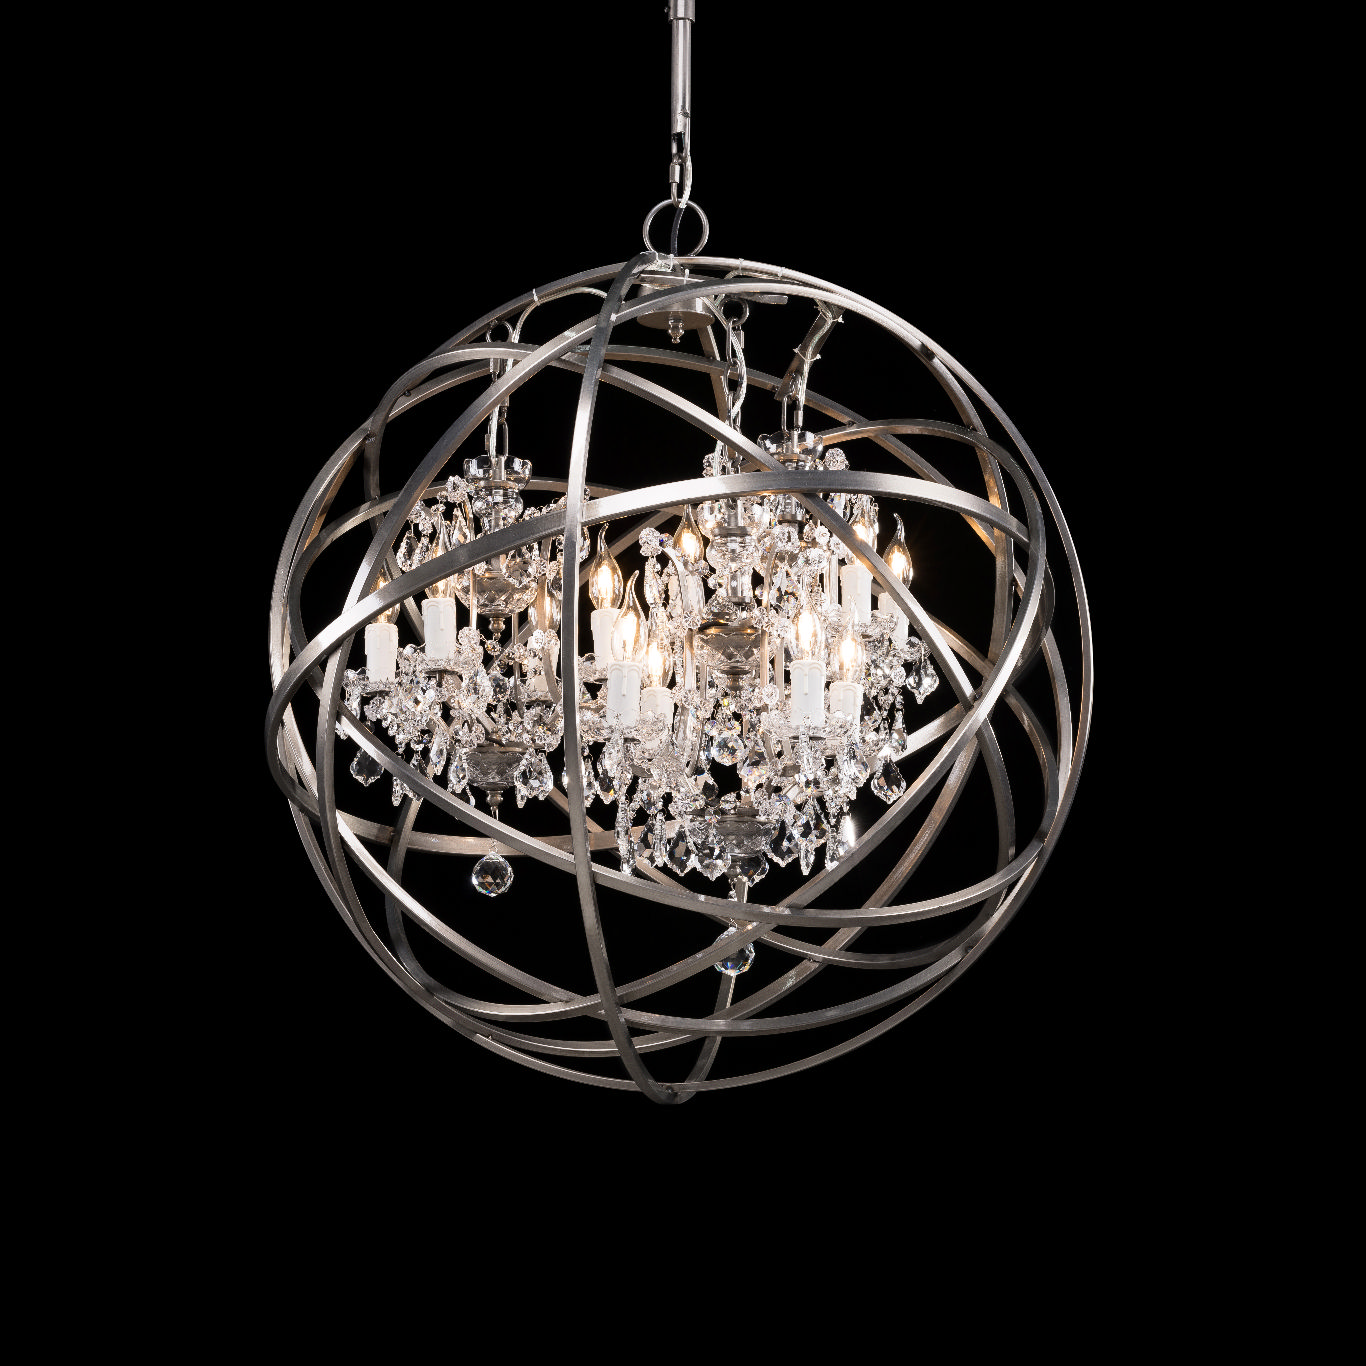 Timothy Oulton Orb Crystal Chandelier